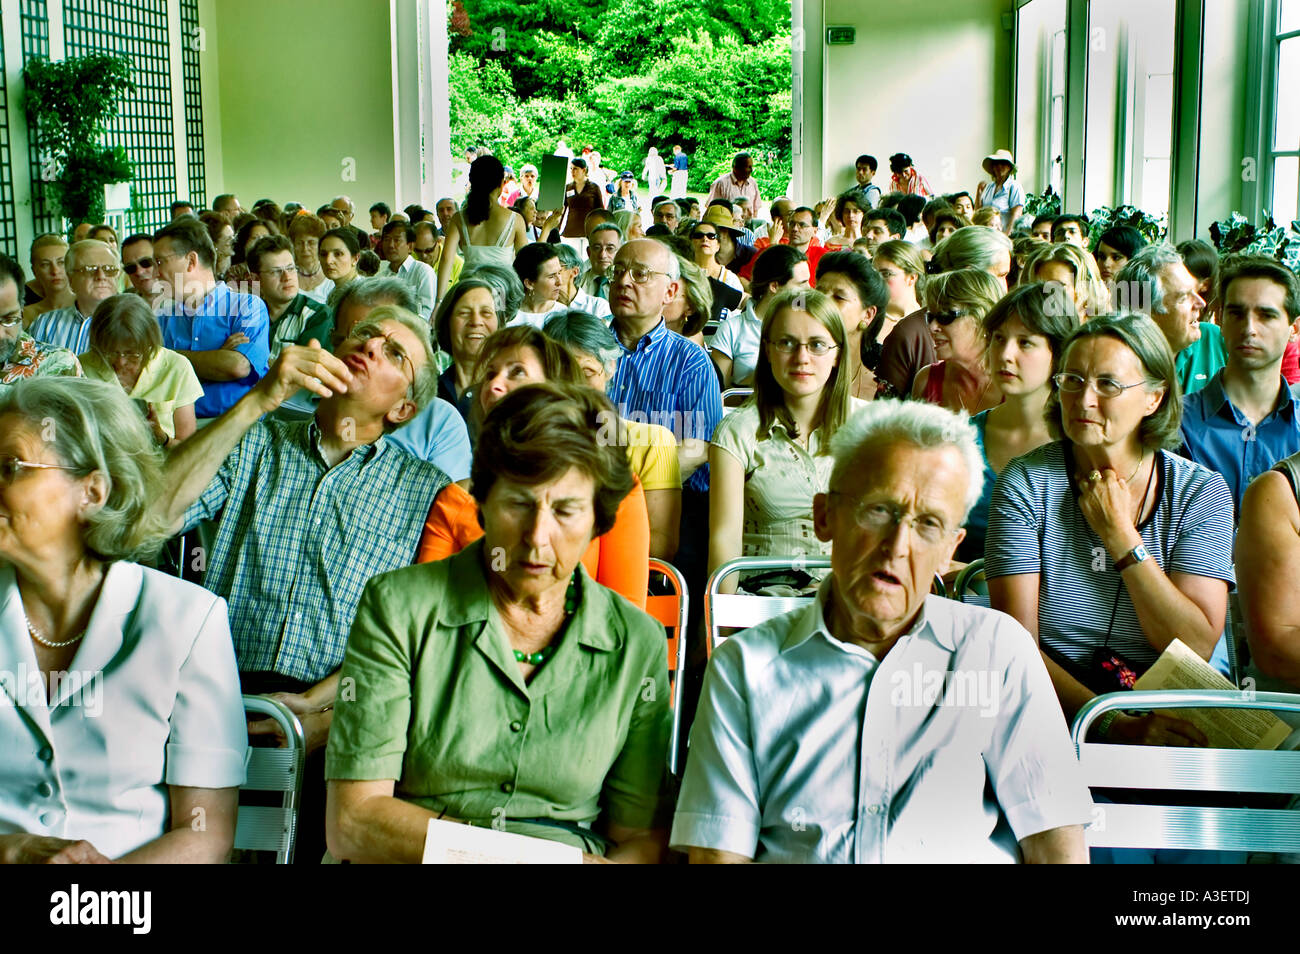 View from Stage, Paris France Mixed Audience in Classic Music Concert in 'Bagatelle Gardens' - Stock Image